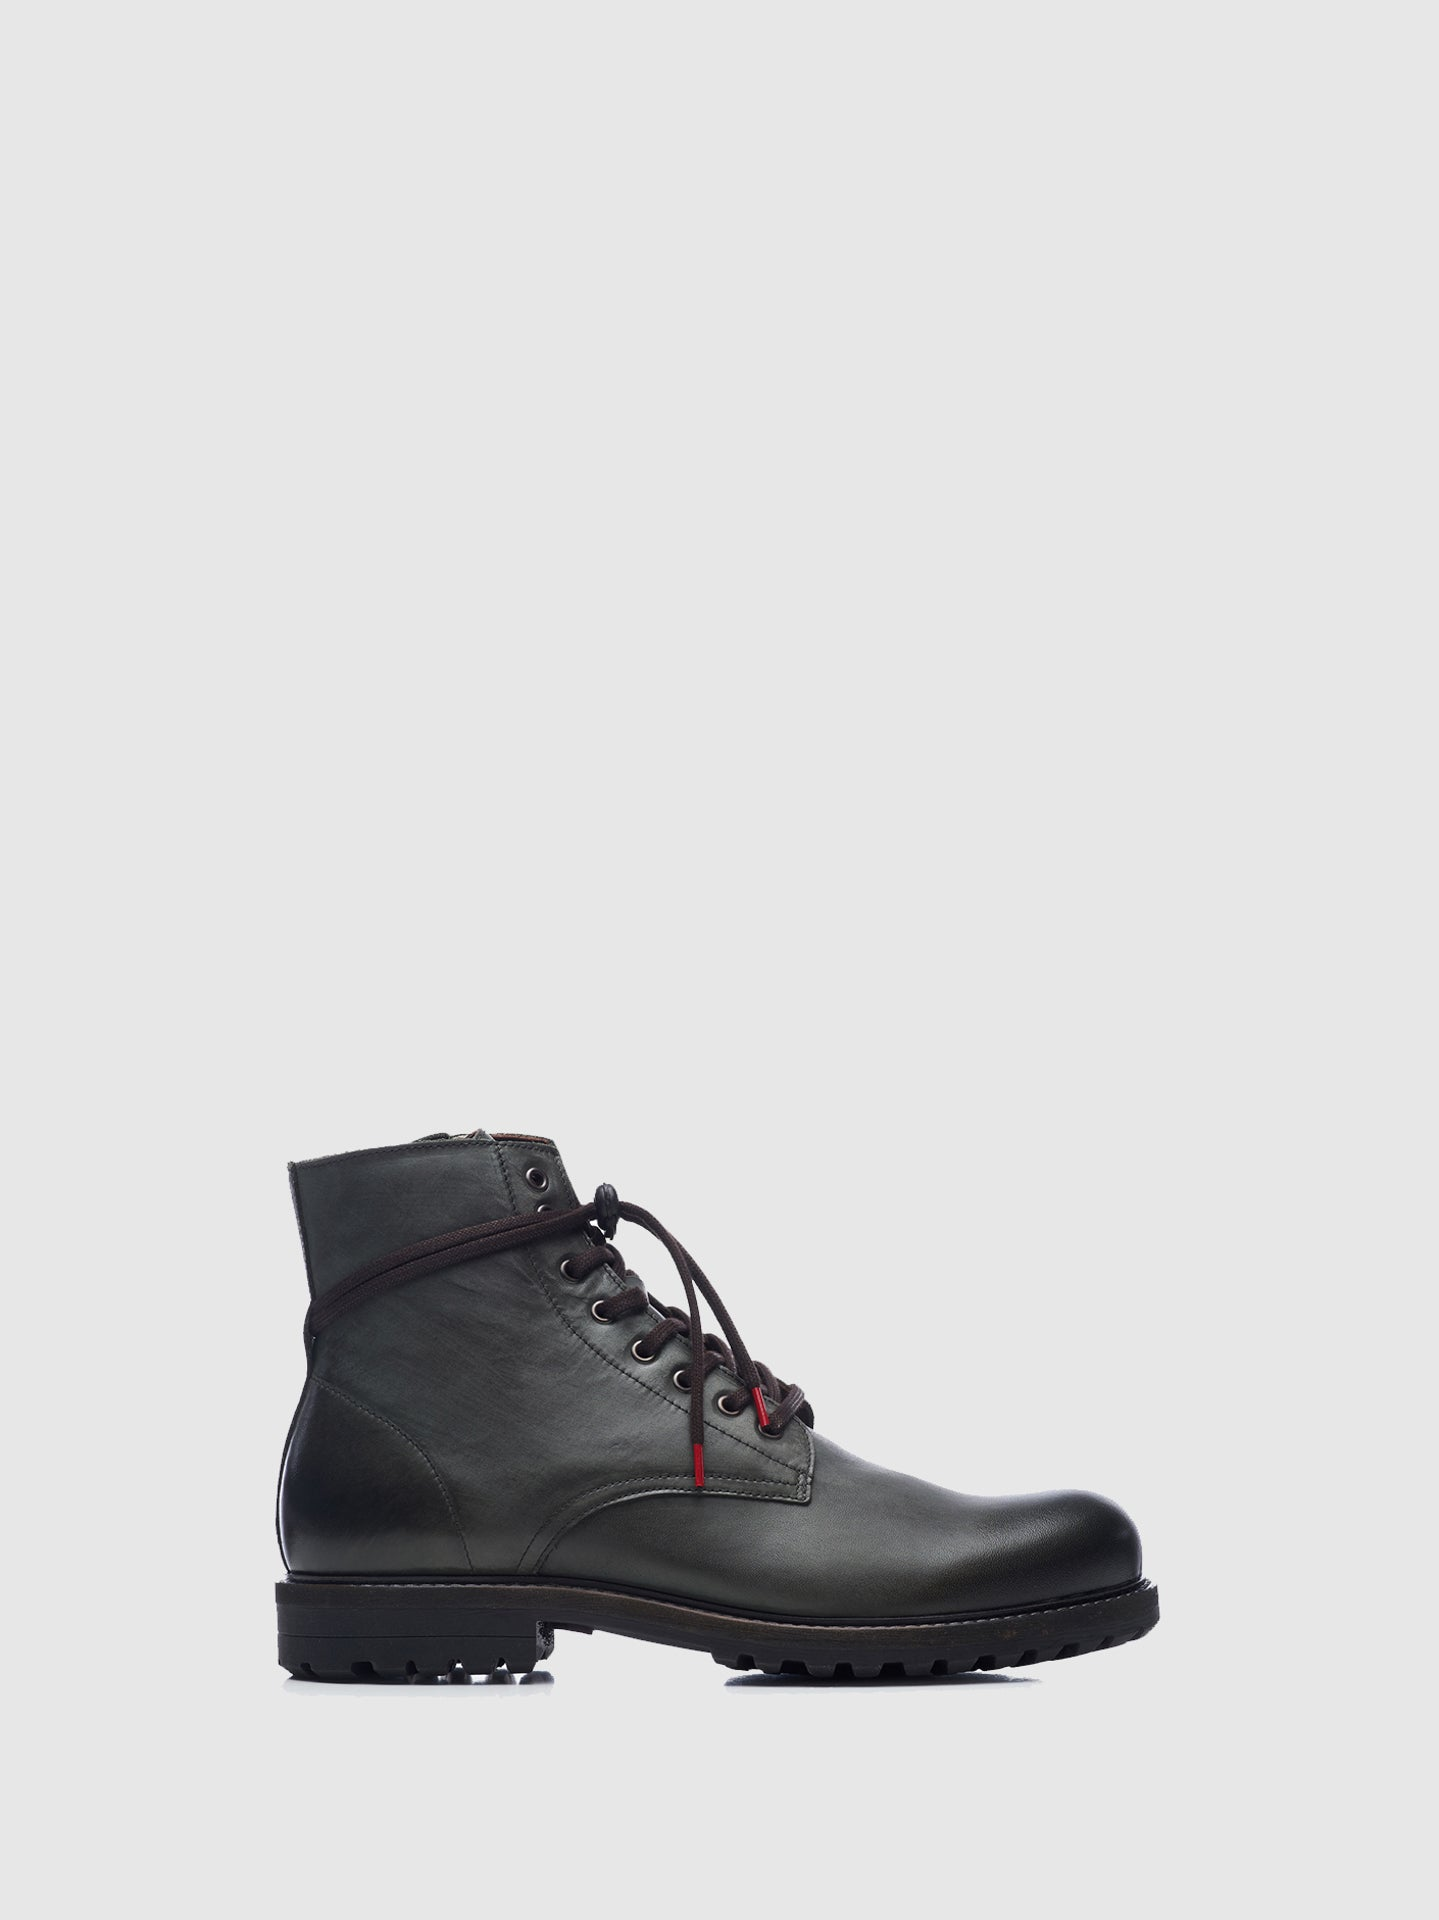 Nobrand Green Military Boots